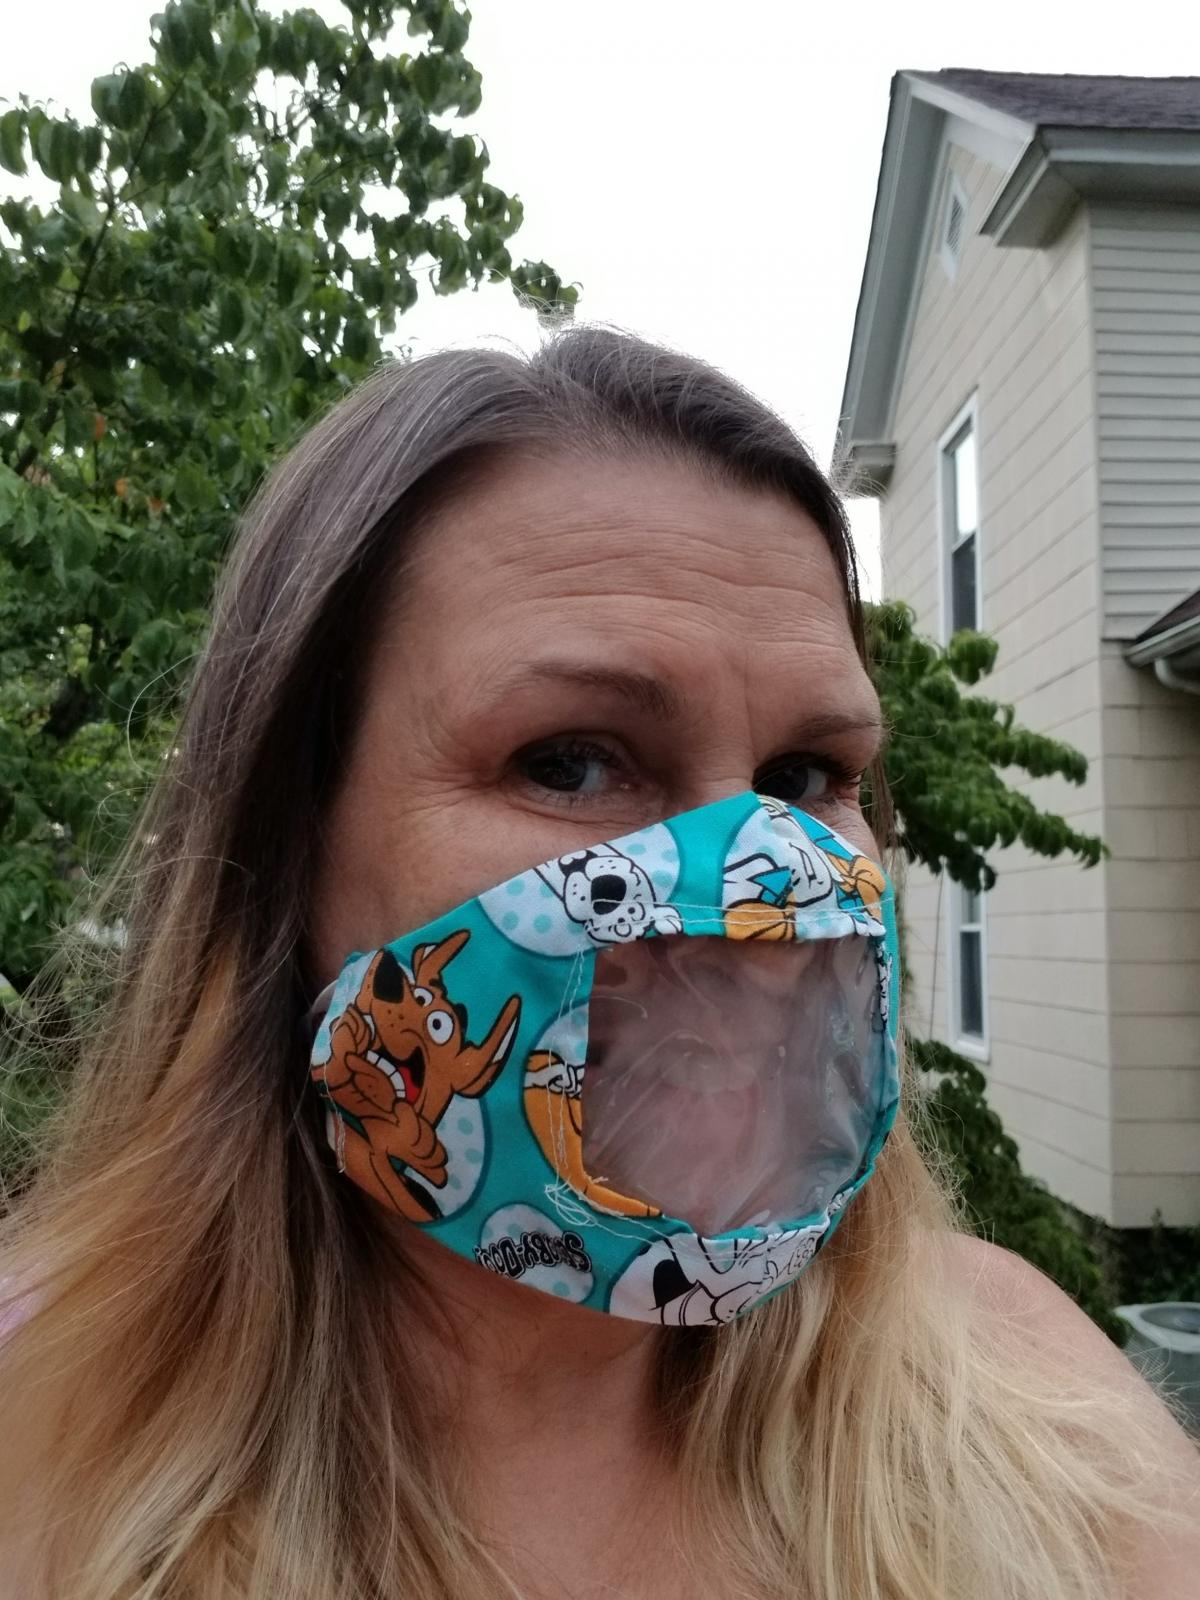 Karen Franks, the volunteer who made the mask used by Jessica Cournoyer and Blake Blackmon when their baby was born, is a North Carolina elementary school music teacher who recently turned to sewing masks — mostly clear ones — to help her community.